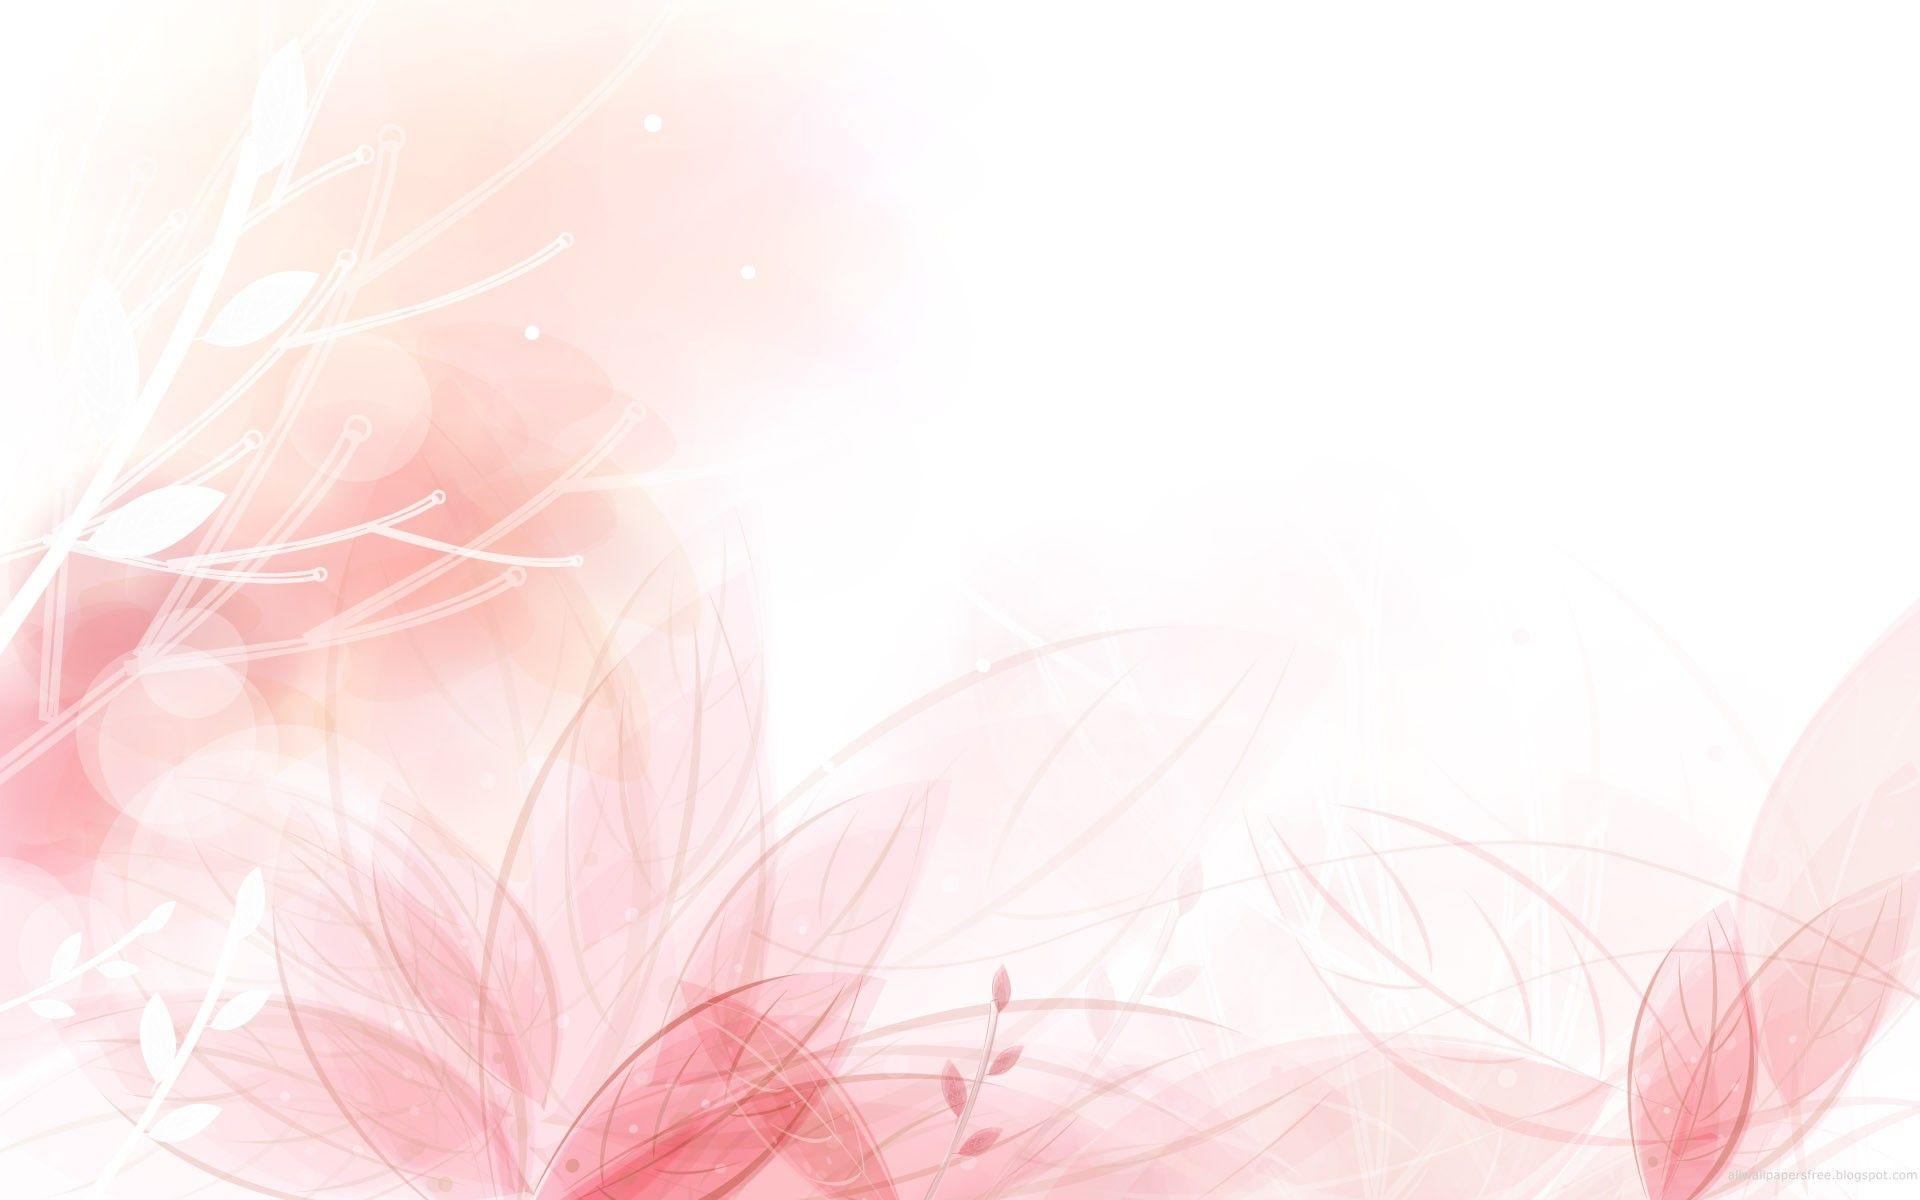 Pastel Pink Background Powerpoint Backgrounds For Free Powerpoint Templates